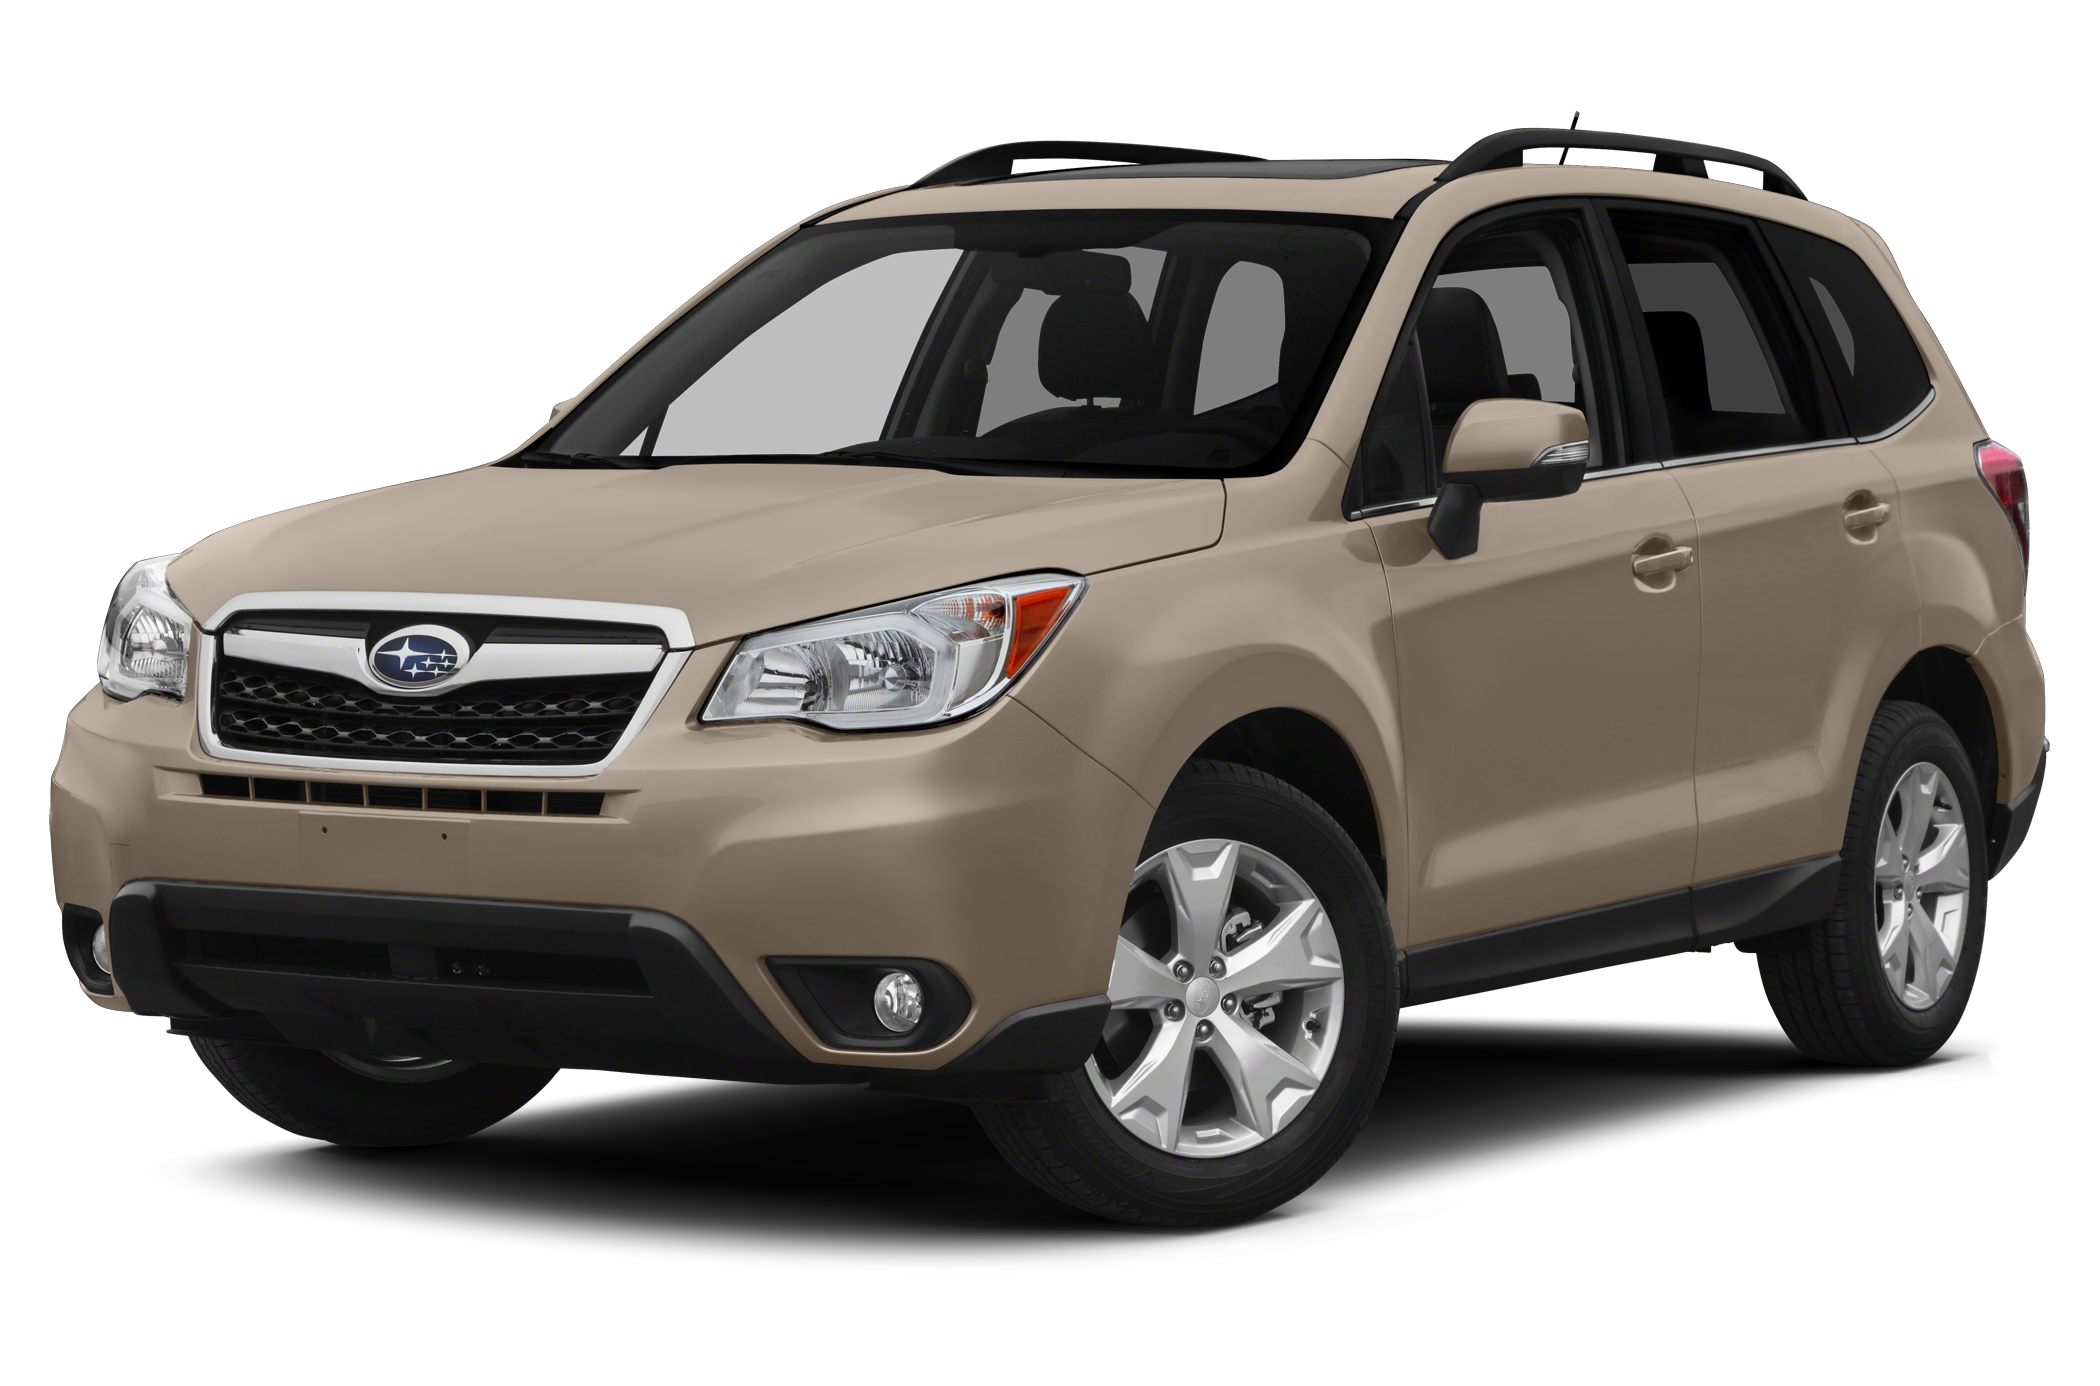 2015 Subaru Forester 2.5i Limited SUV for sale in Carson City for $31,893 with 10 miles